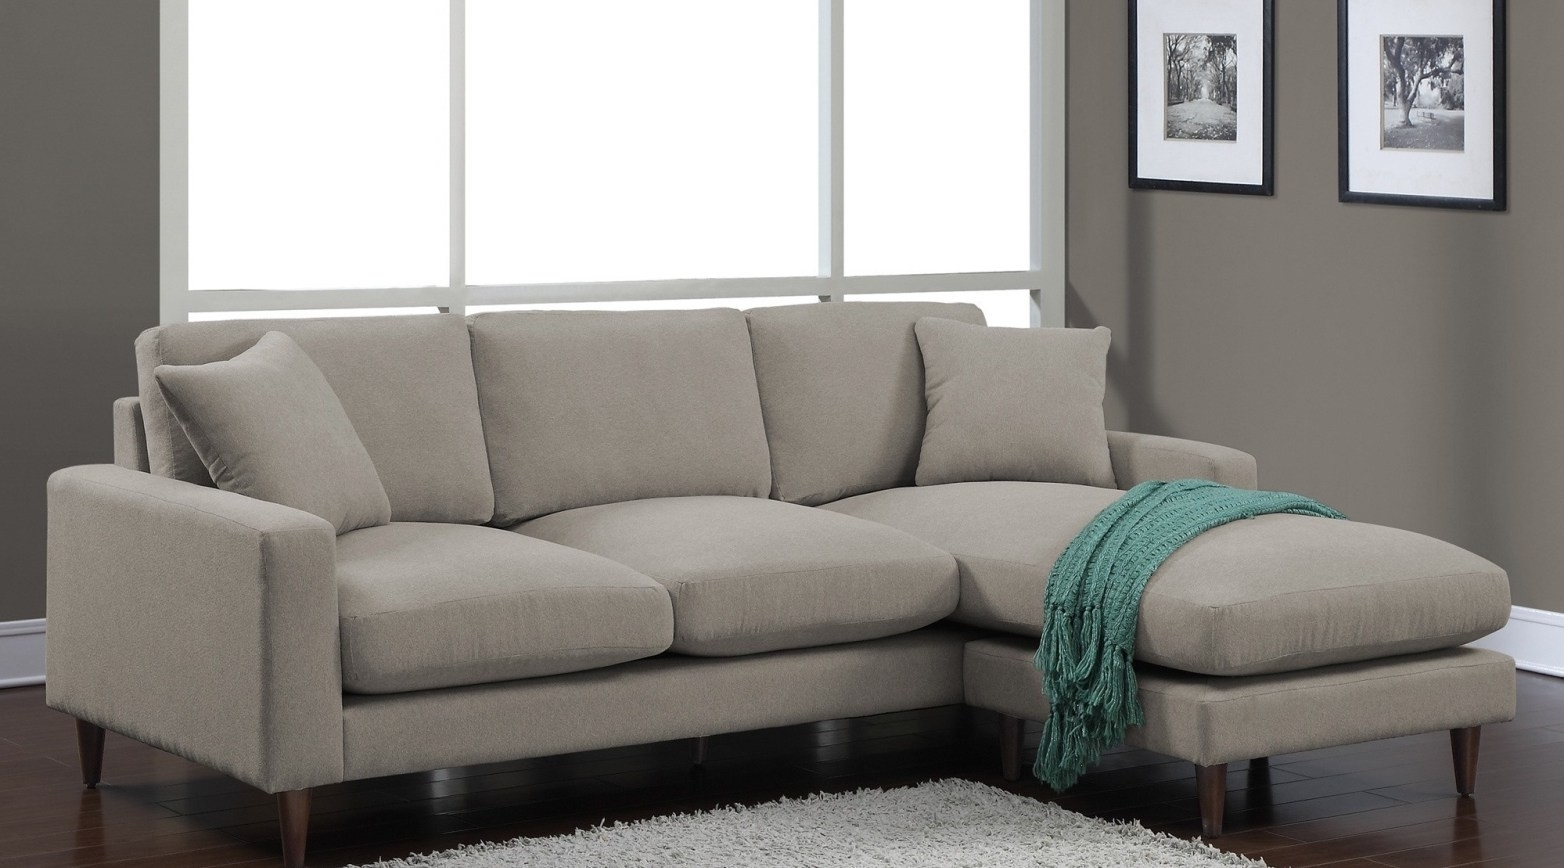 Sectional Sofa Bed Vancouver Bc | Thecreativescientist Regarding Vancouver Bc Sectional Sofas (View 10 of 10)